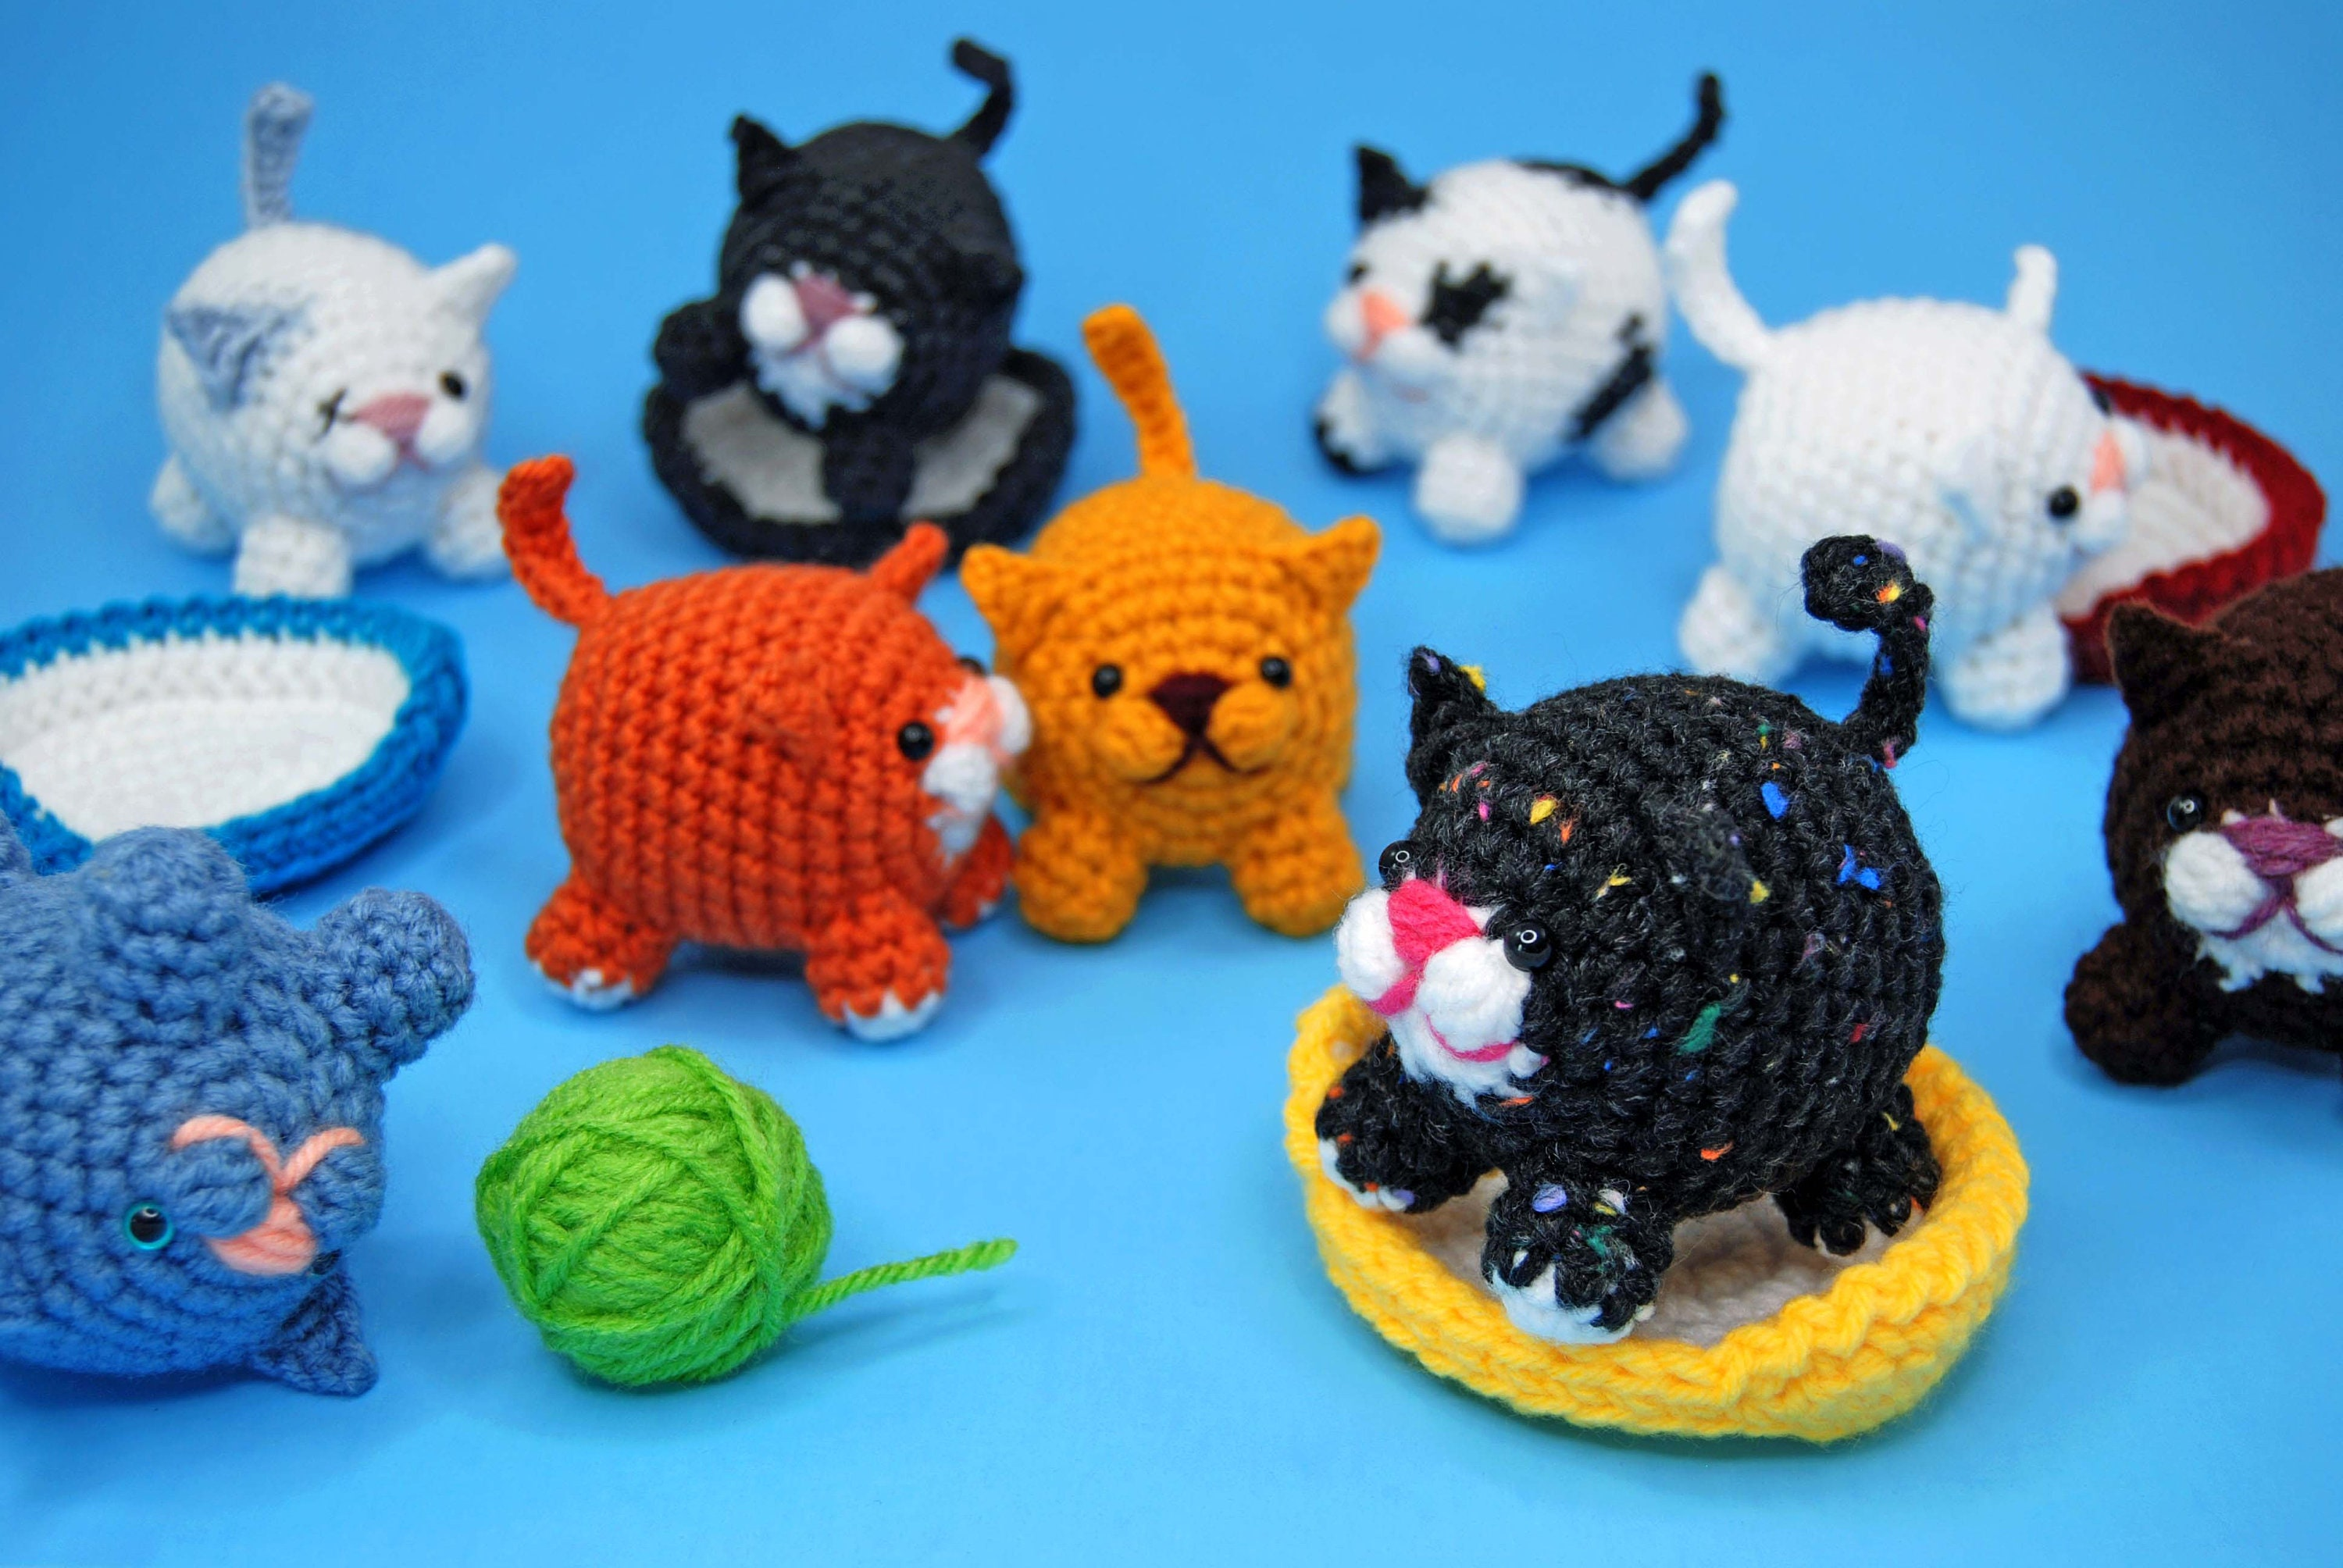 9 Crochet Cat Patterns -Amigurumi Tips - A More Crafty Life | 2008x3000